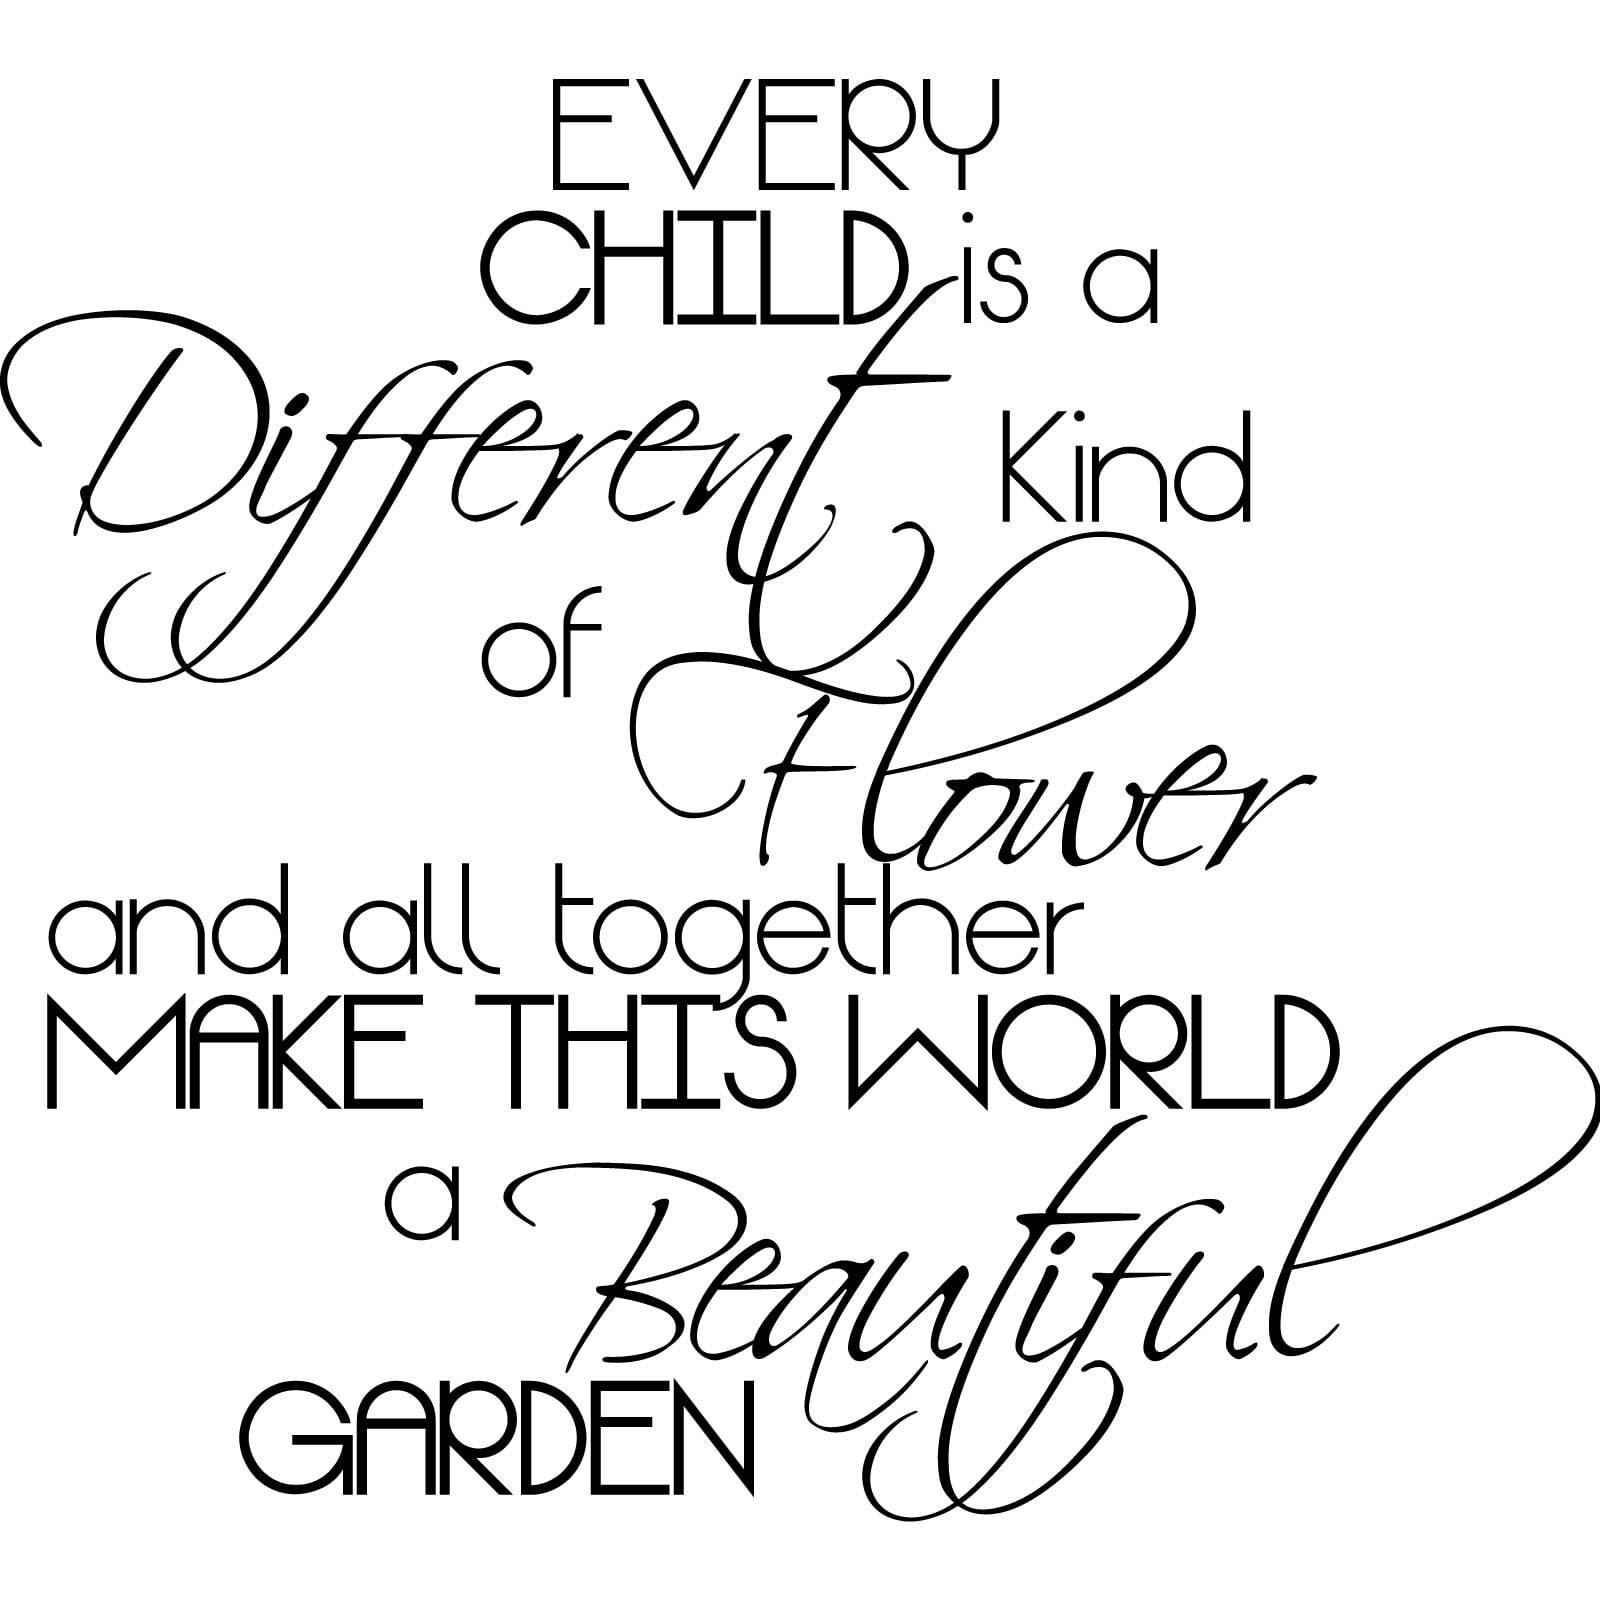 Image result for every child is a different kind of flower